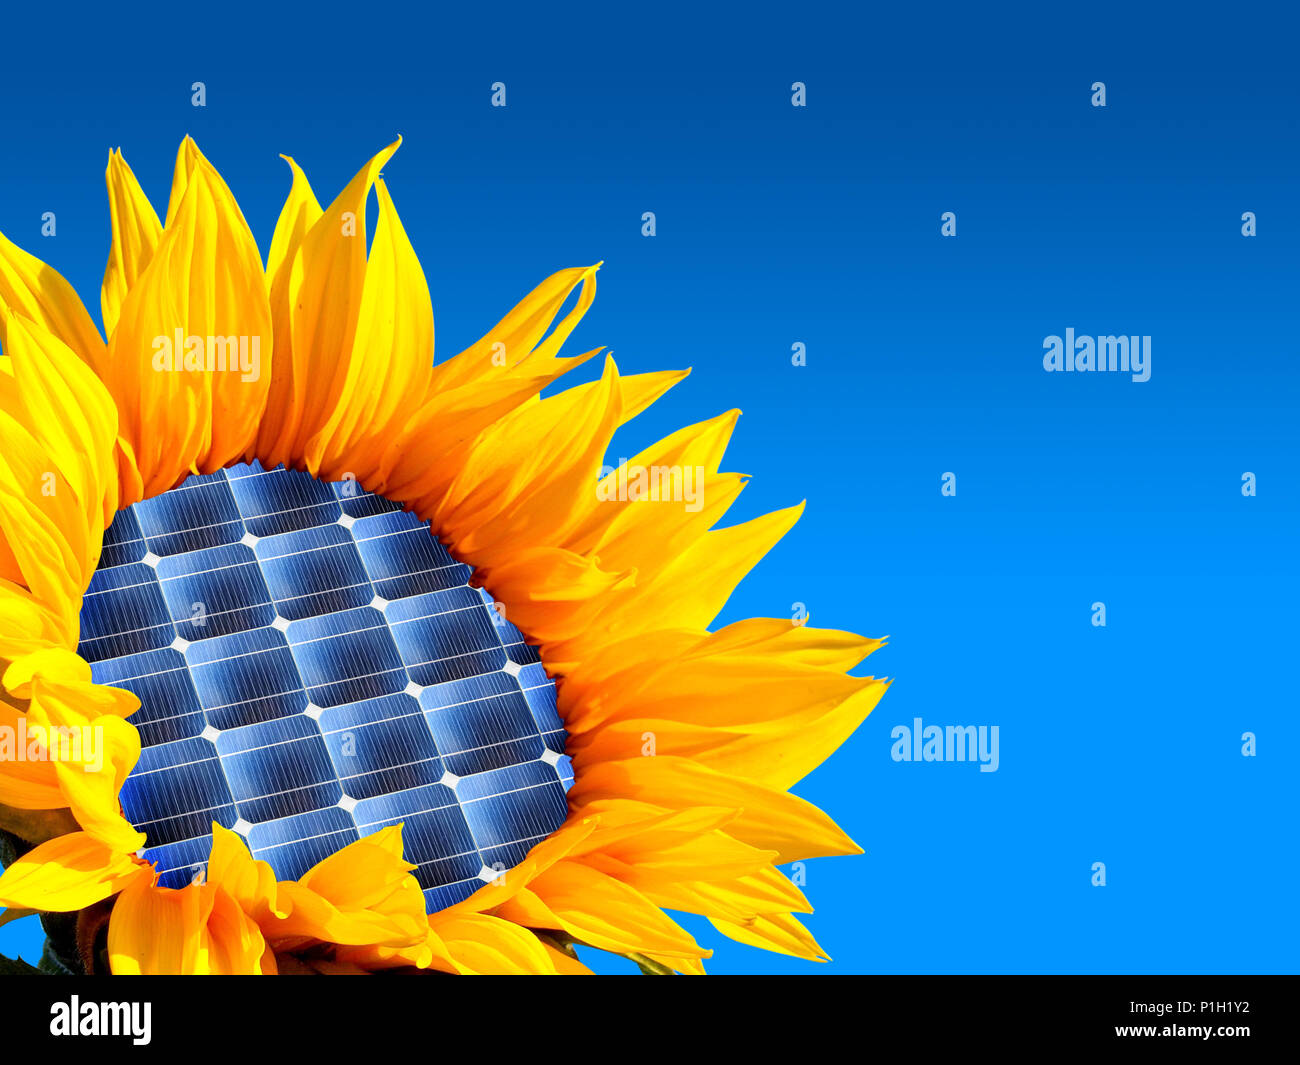 sunflower with solar energy, integration of environment and technology - Stock Image